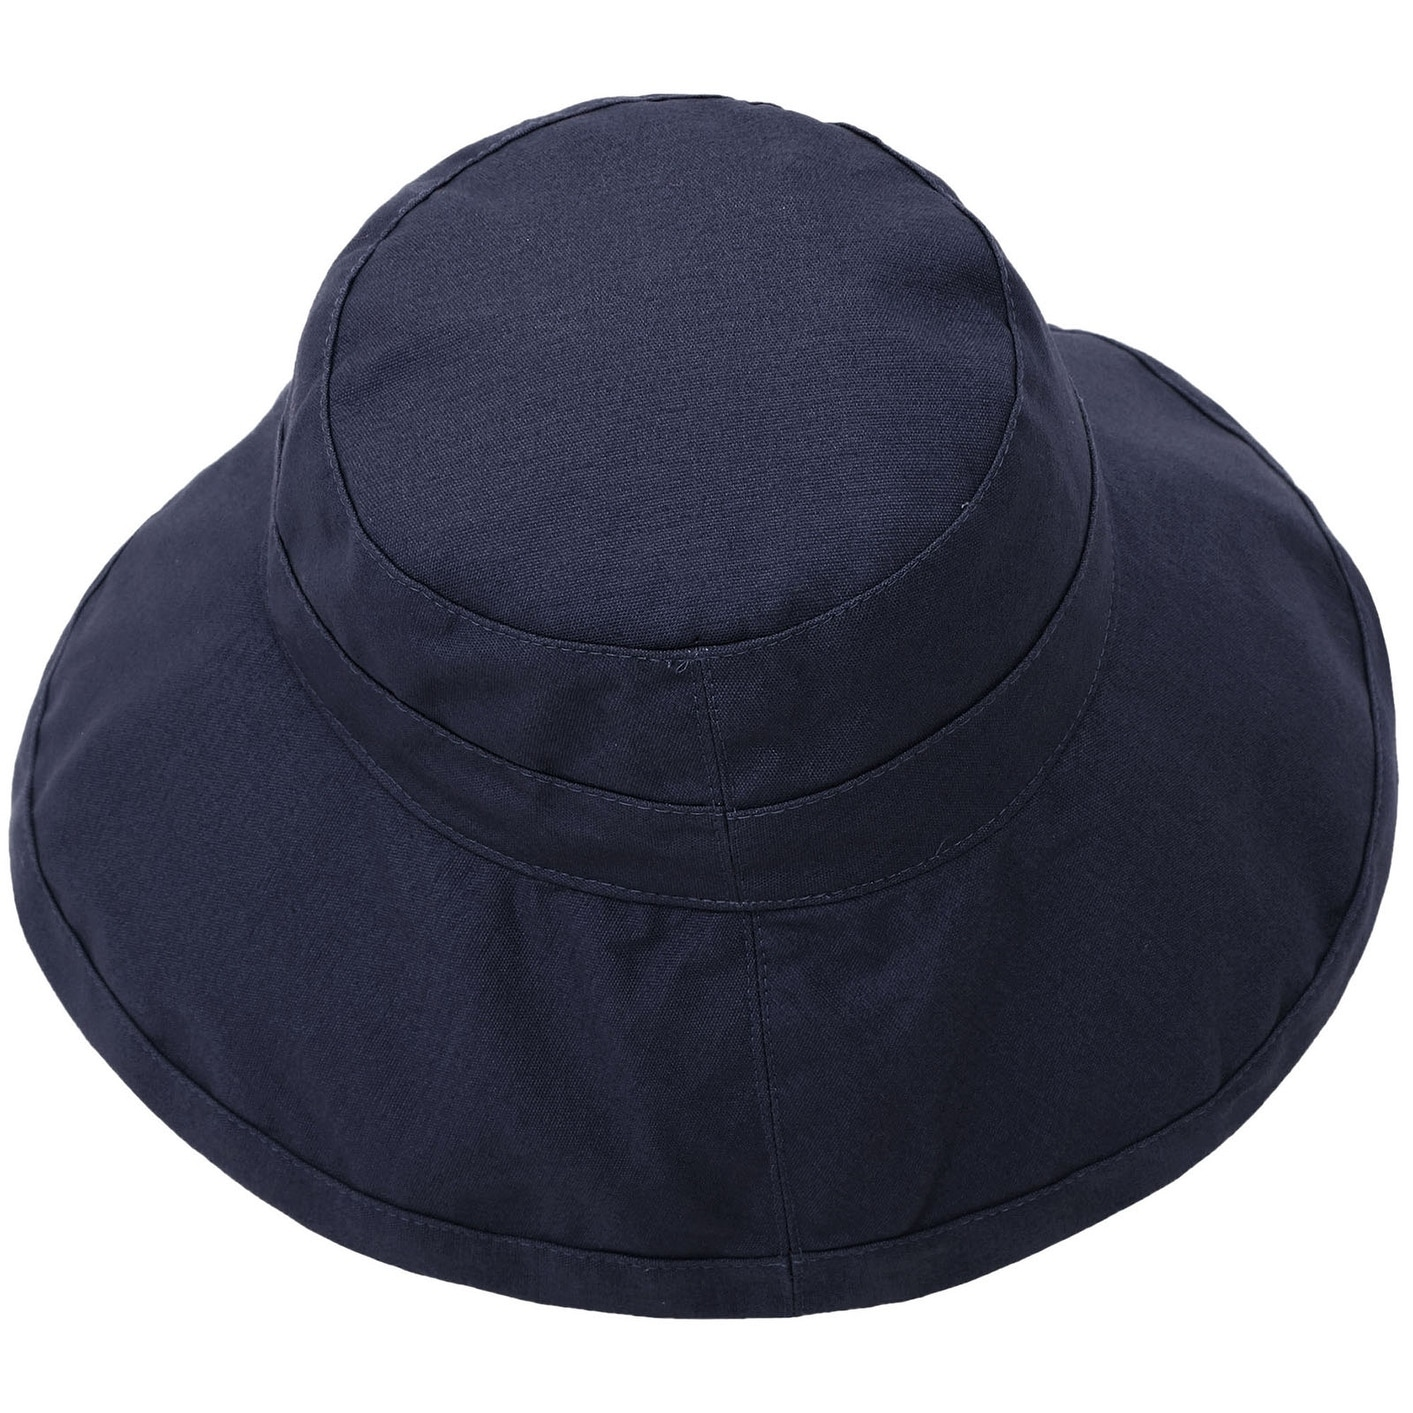 Women s Foldable Cotton Wide Brim Bucket Hat with Sun Protection 7b78ef9c2af